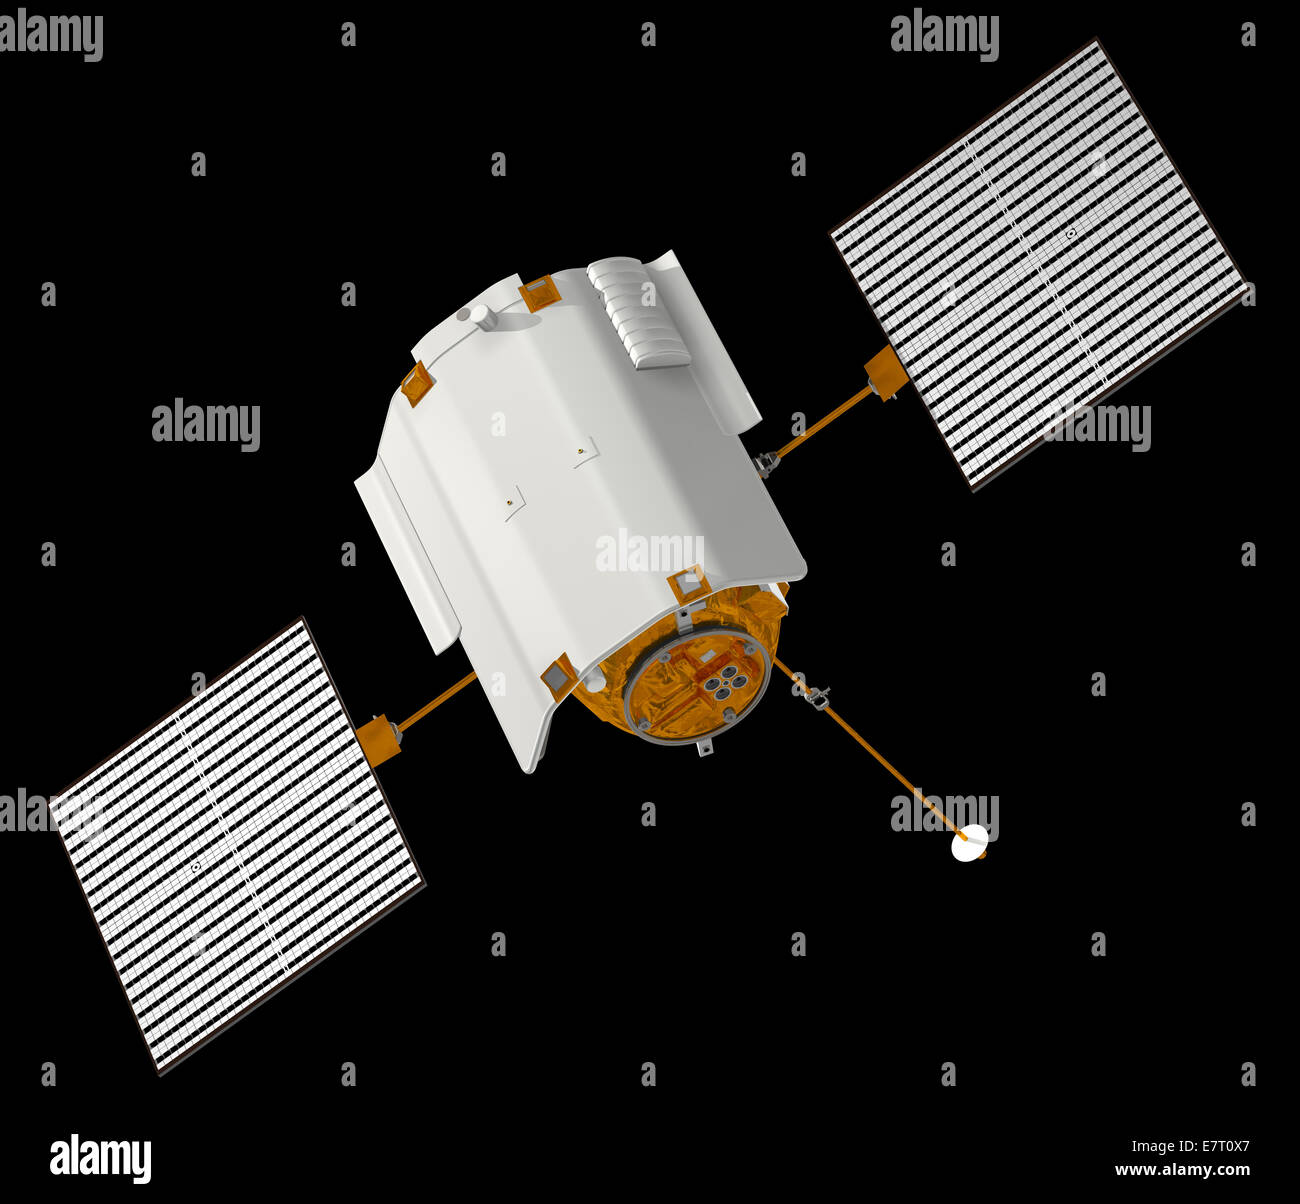 Spacecraft 'Messenger'. - Stock Image